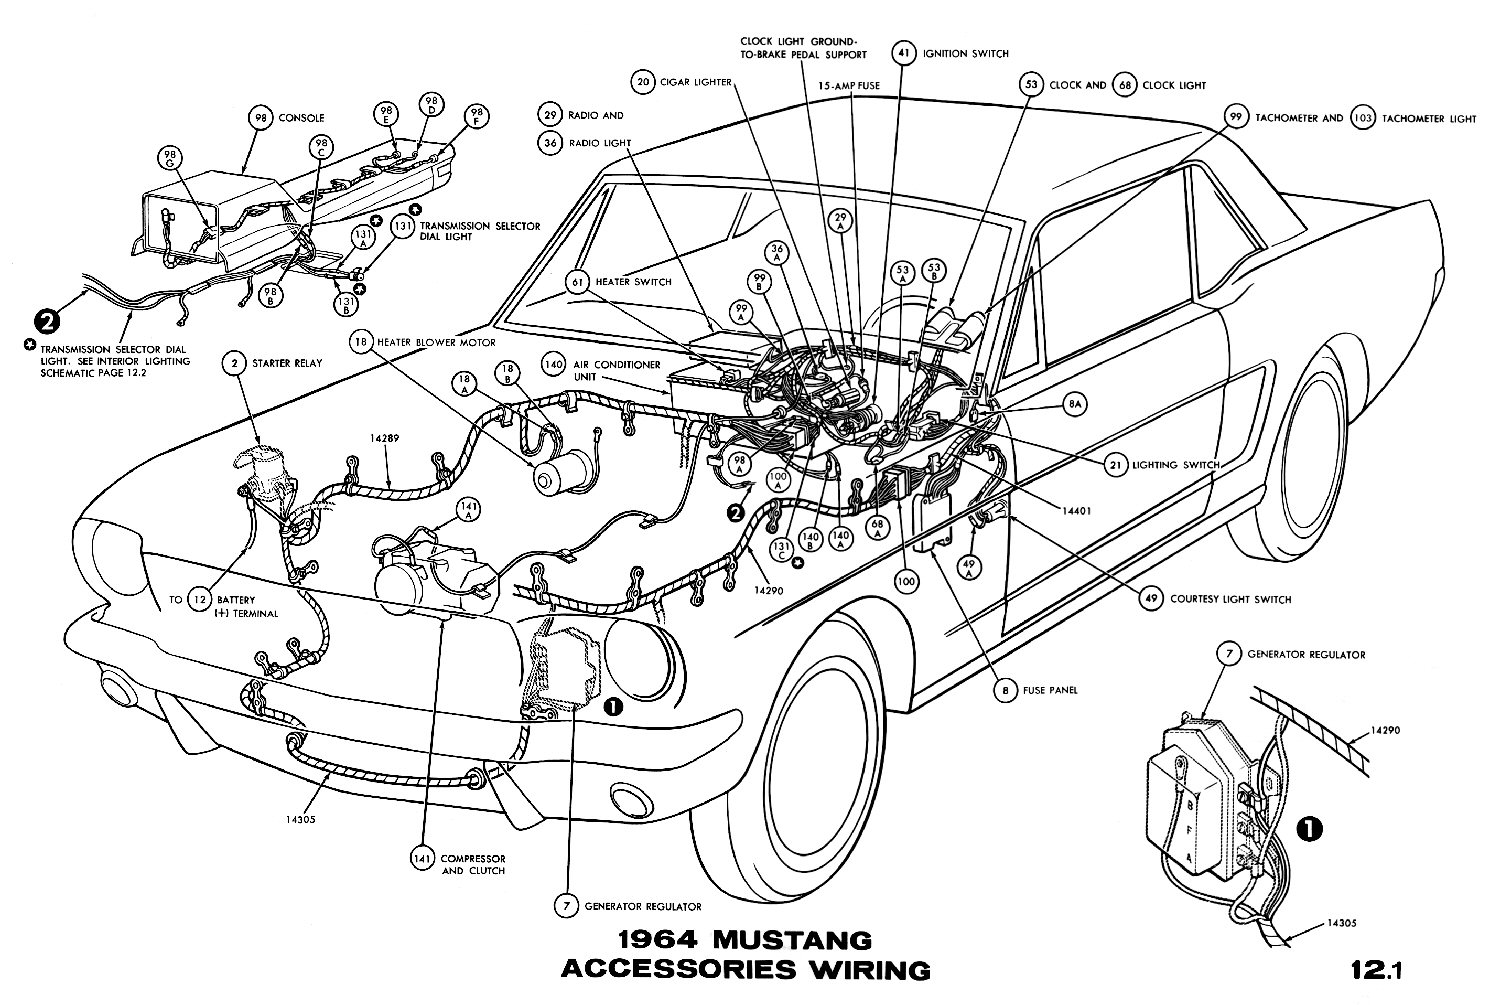 1964 mustang wiring diagrams average joe restoration 1964 mustang accessories pictorial or schematic